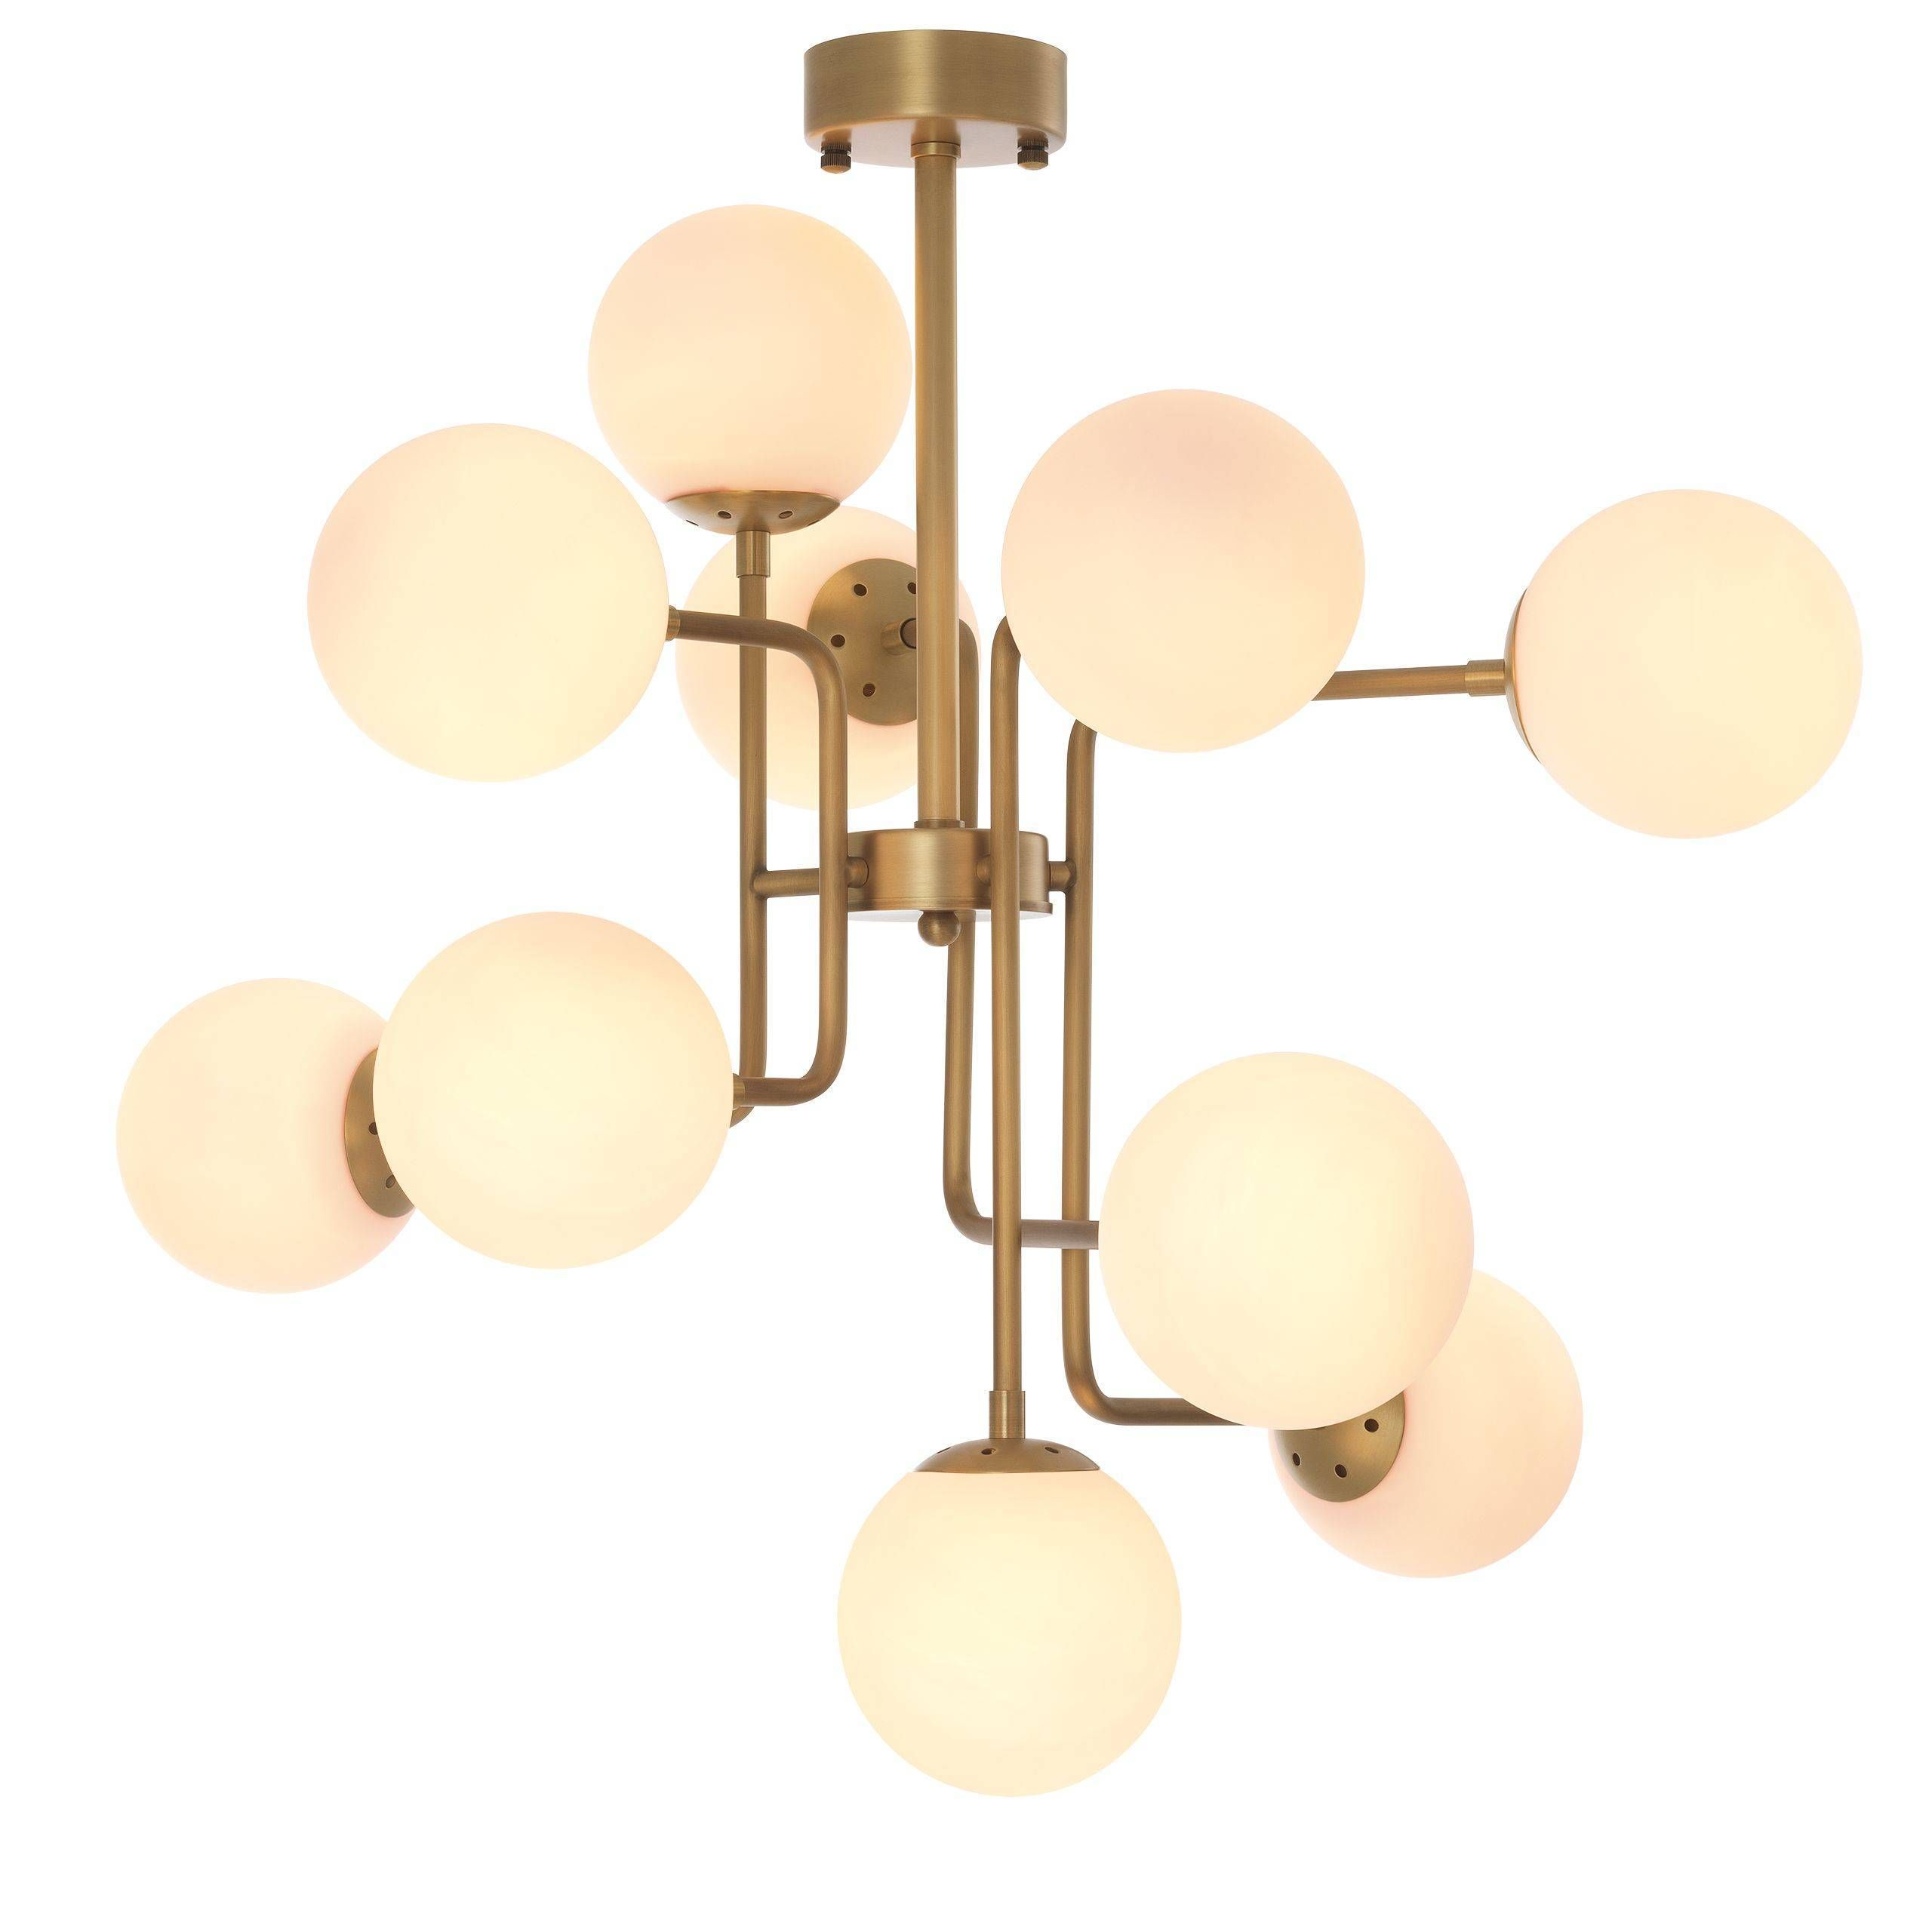 Chase Chandelier Brass Ceiling Light Chandelier Ceiling Lights Globe Chandelier